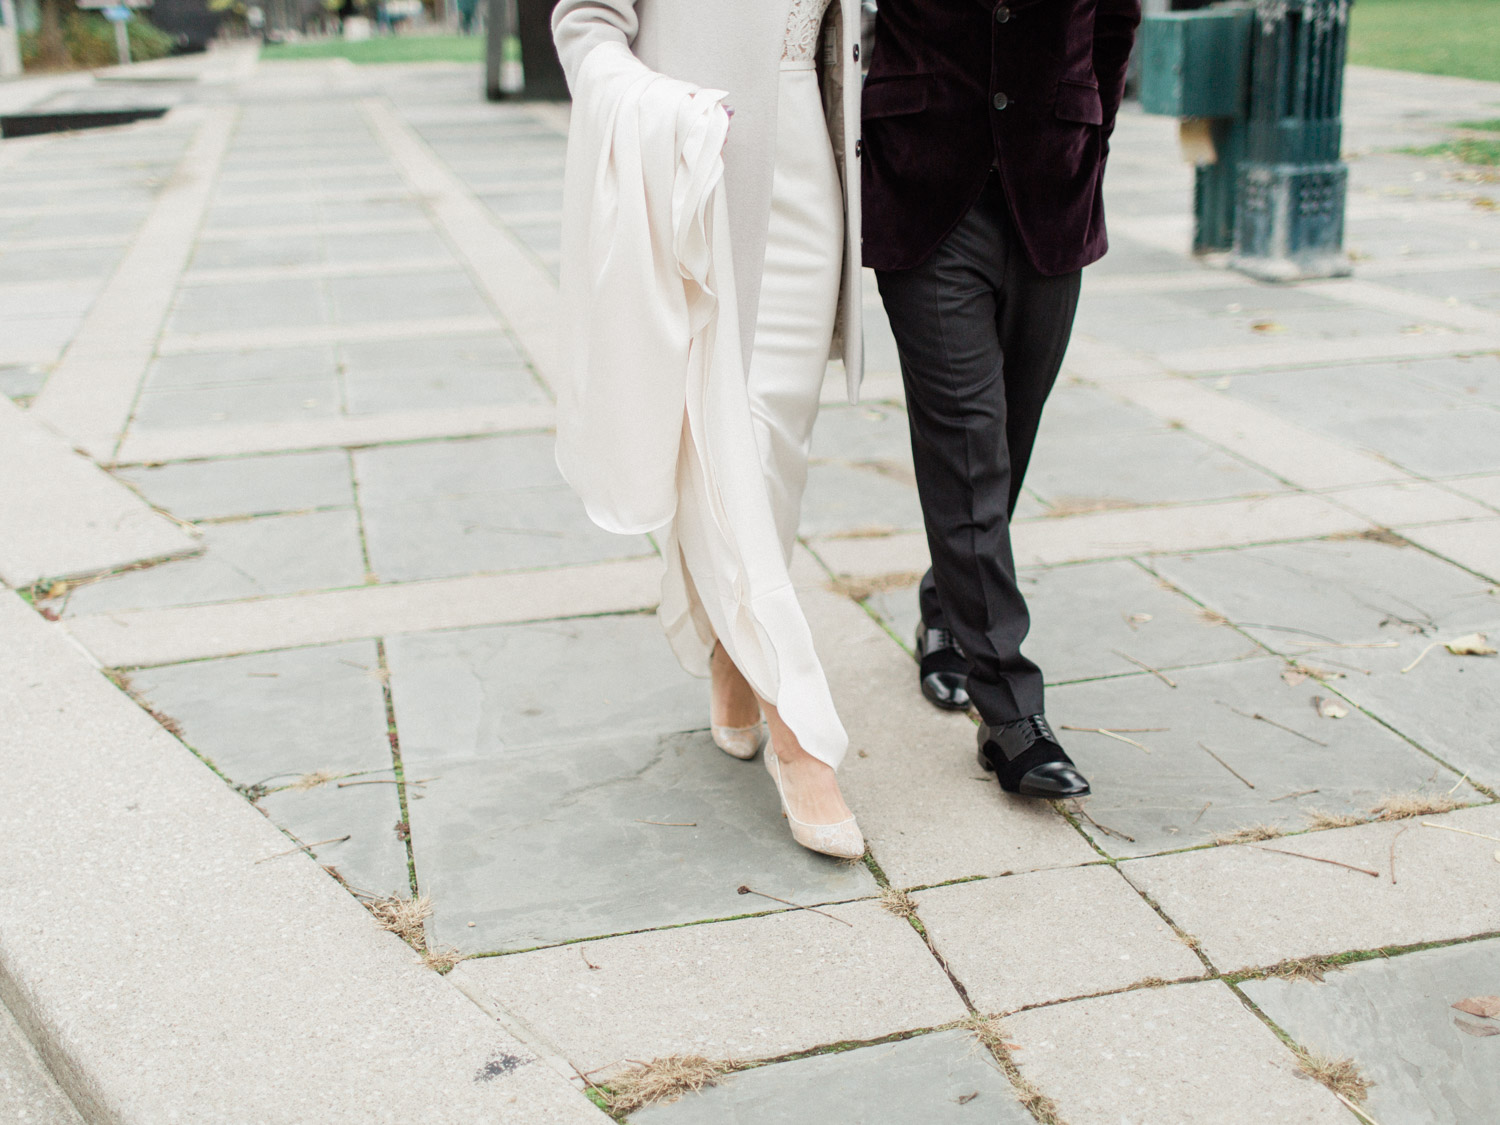 candid photograph of bride and groom laughing while posing for wedding photographs in Downtown Toronto.  Captured by Toronto wedding photographer Corynn Fowler Photography.